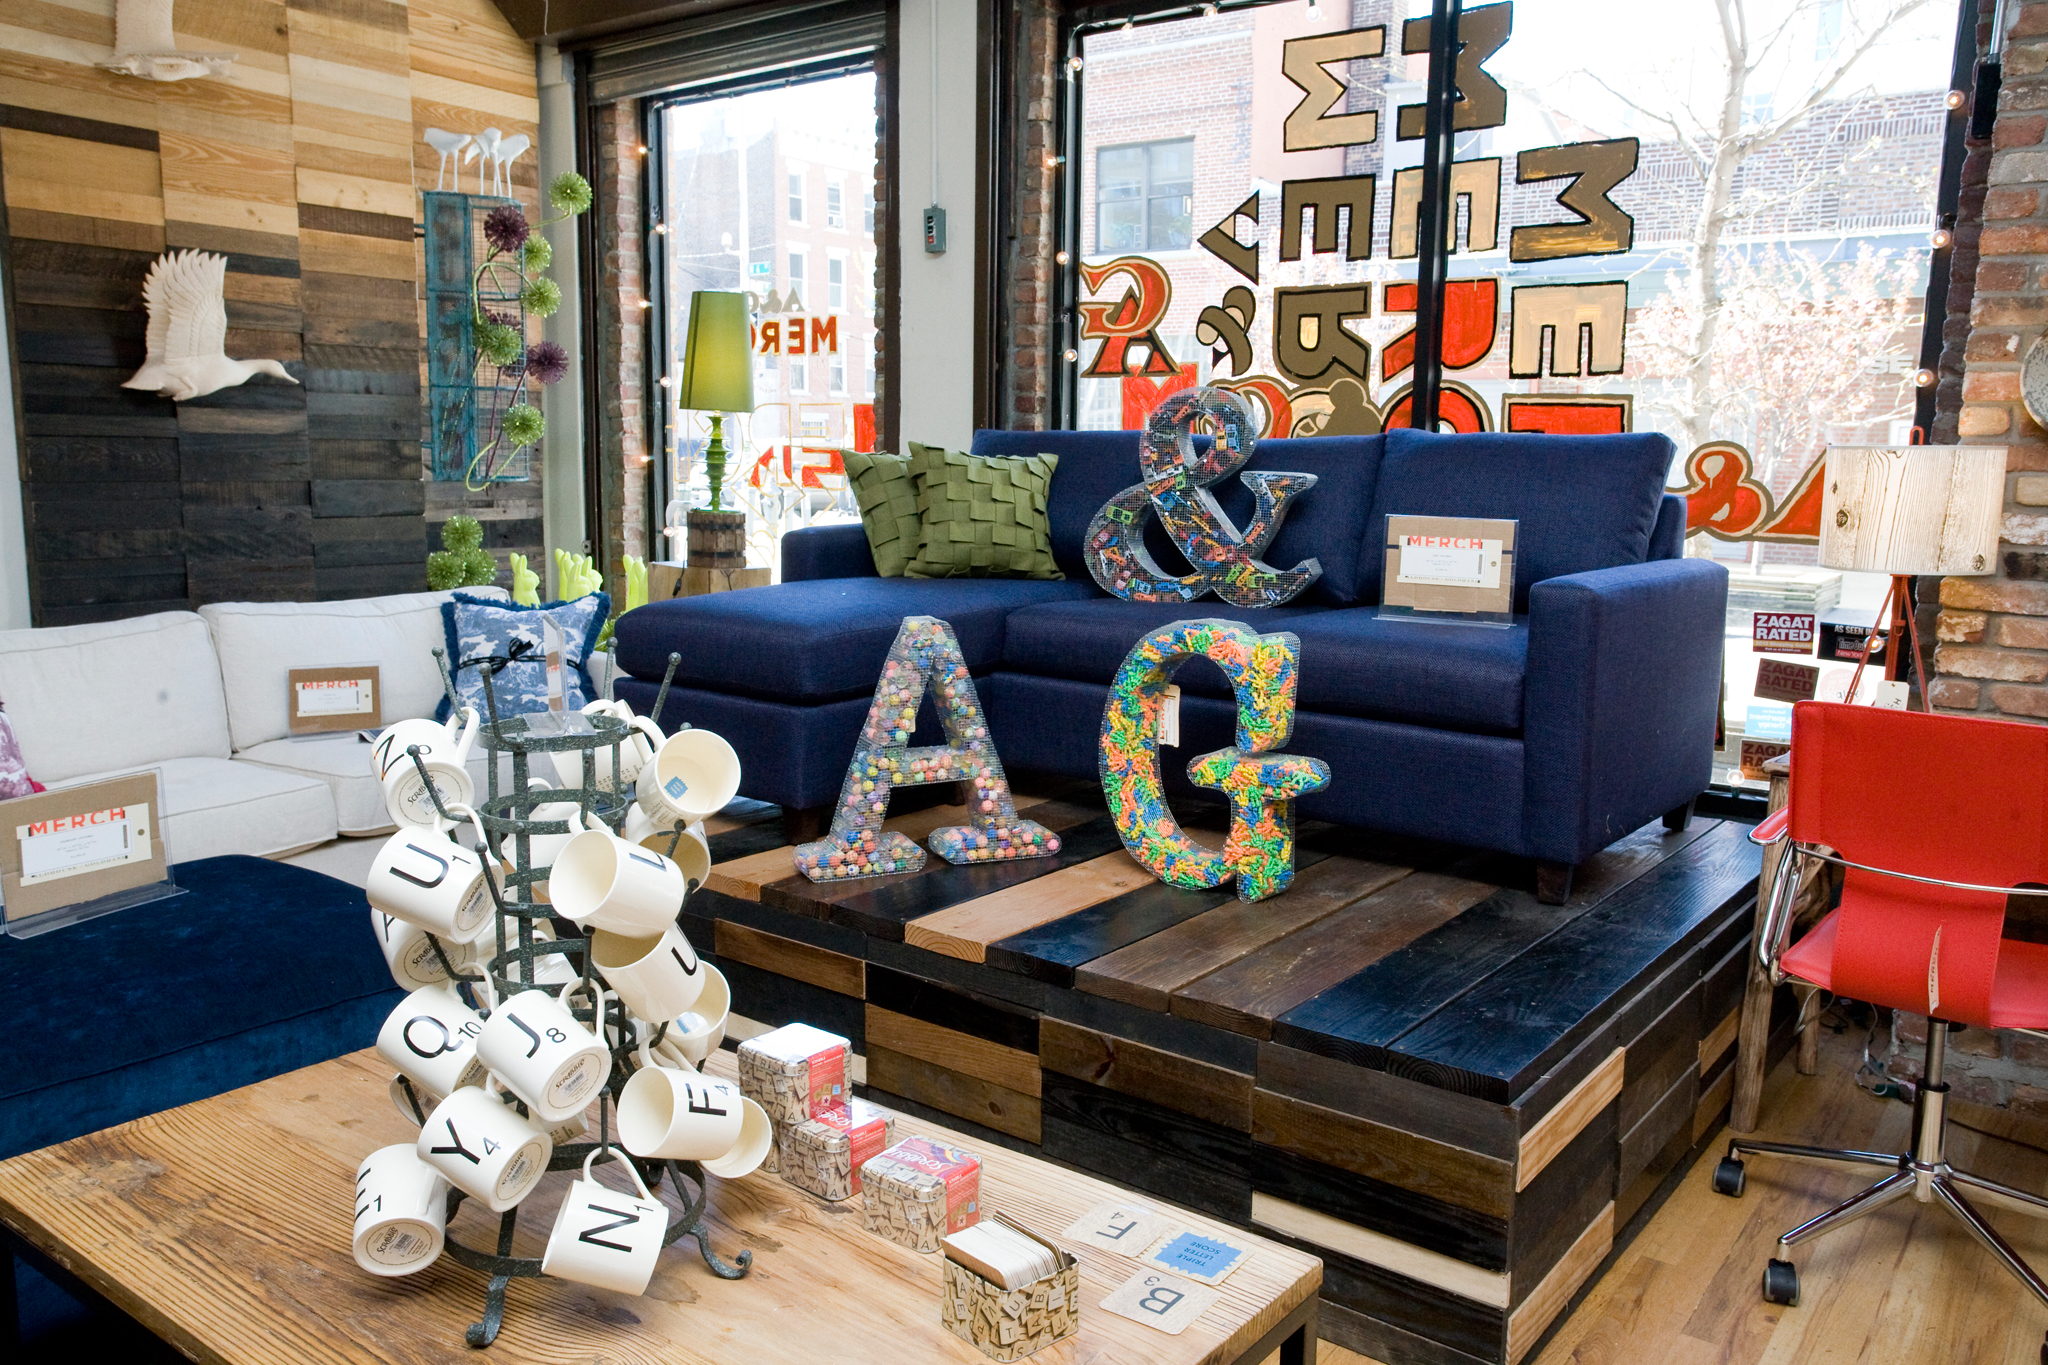 Home Decor Shops 10 home decor stores we love Home Dcor Stores In Nyc